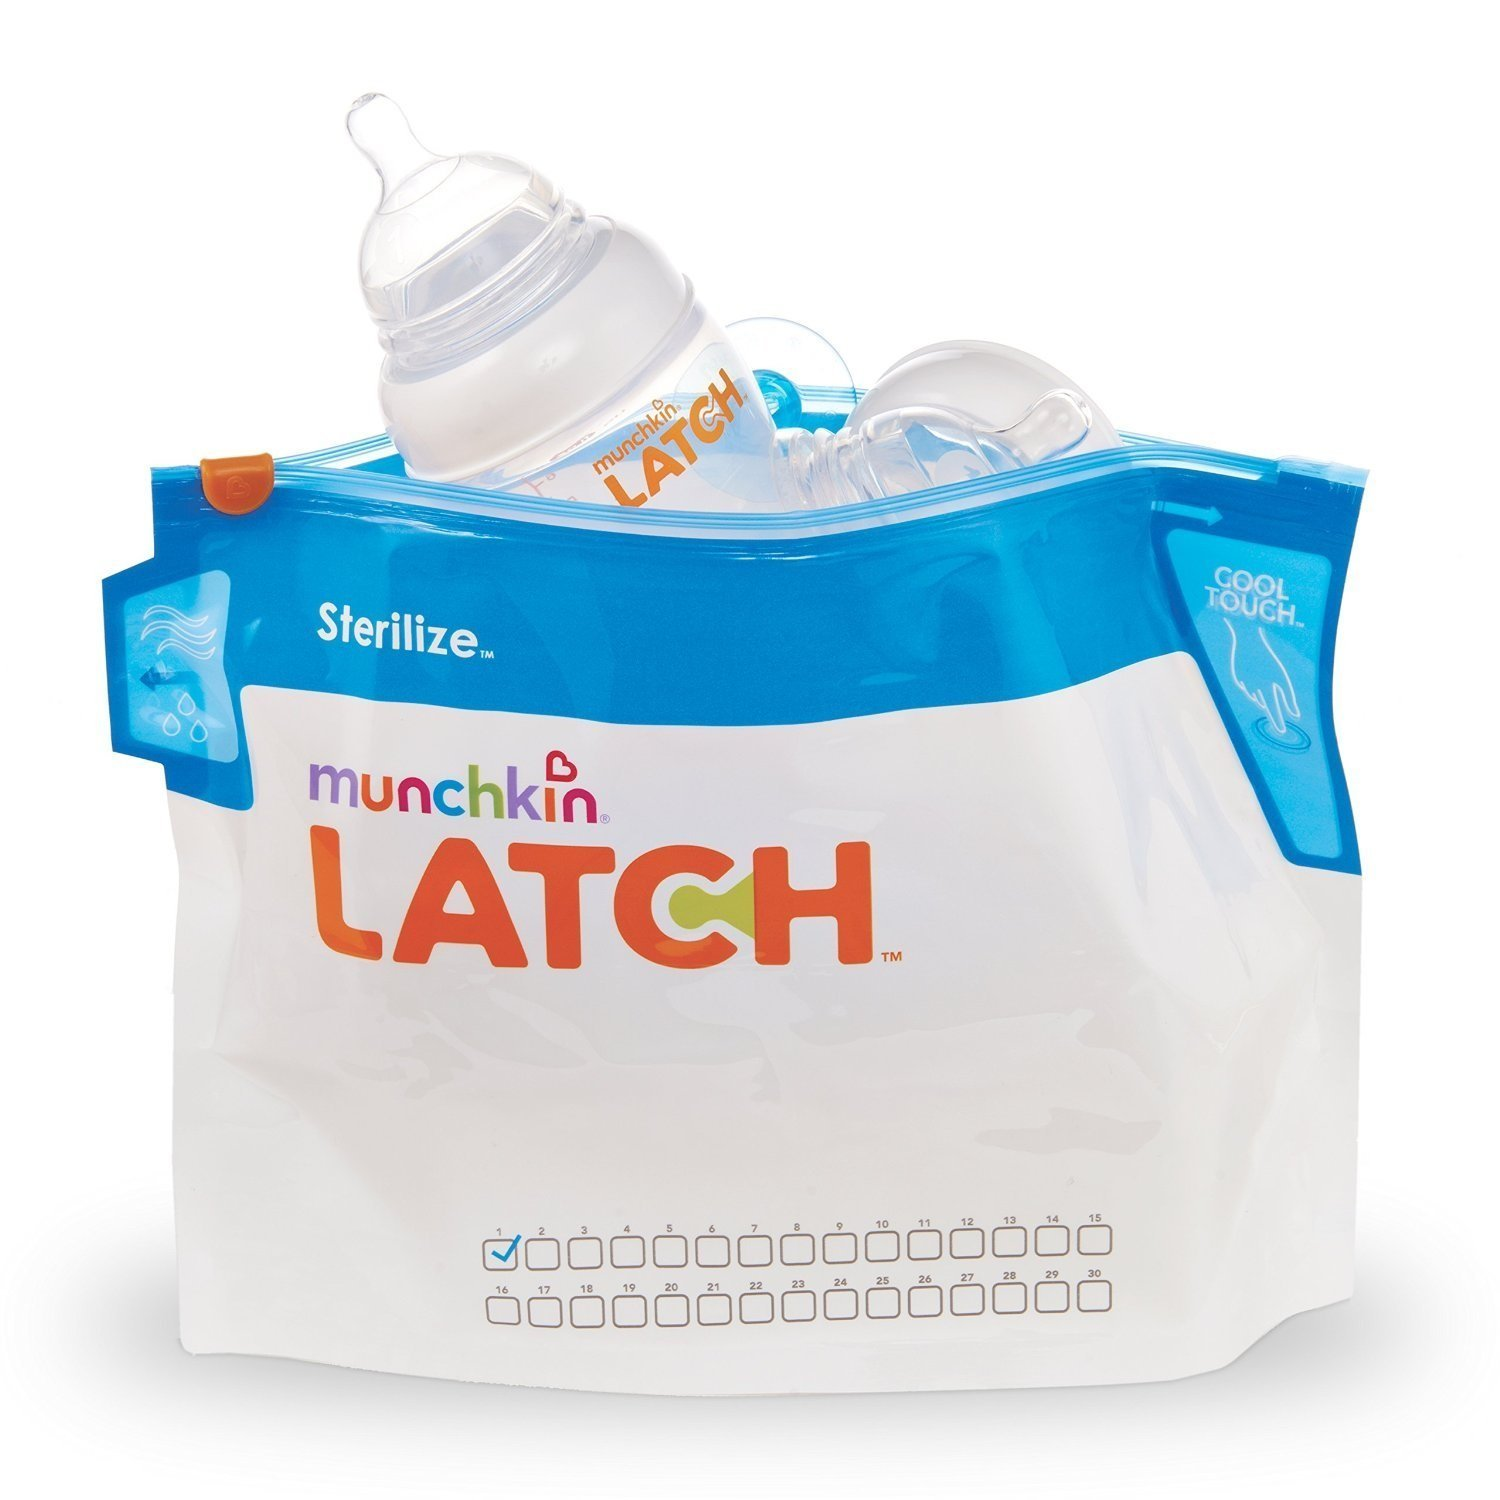 Munchkin Latch Microwave Sterilize Bags, 180 Uses, 6 Pack 011741